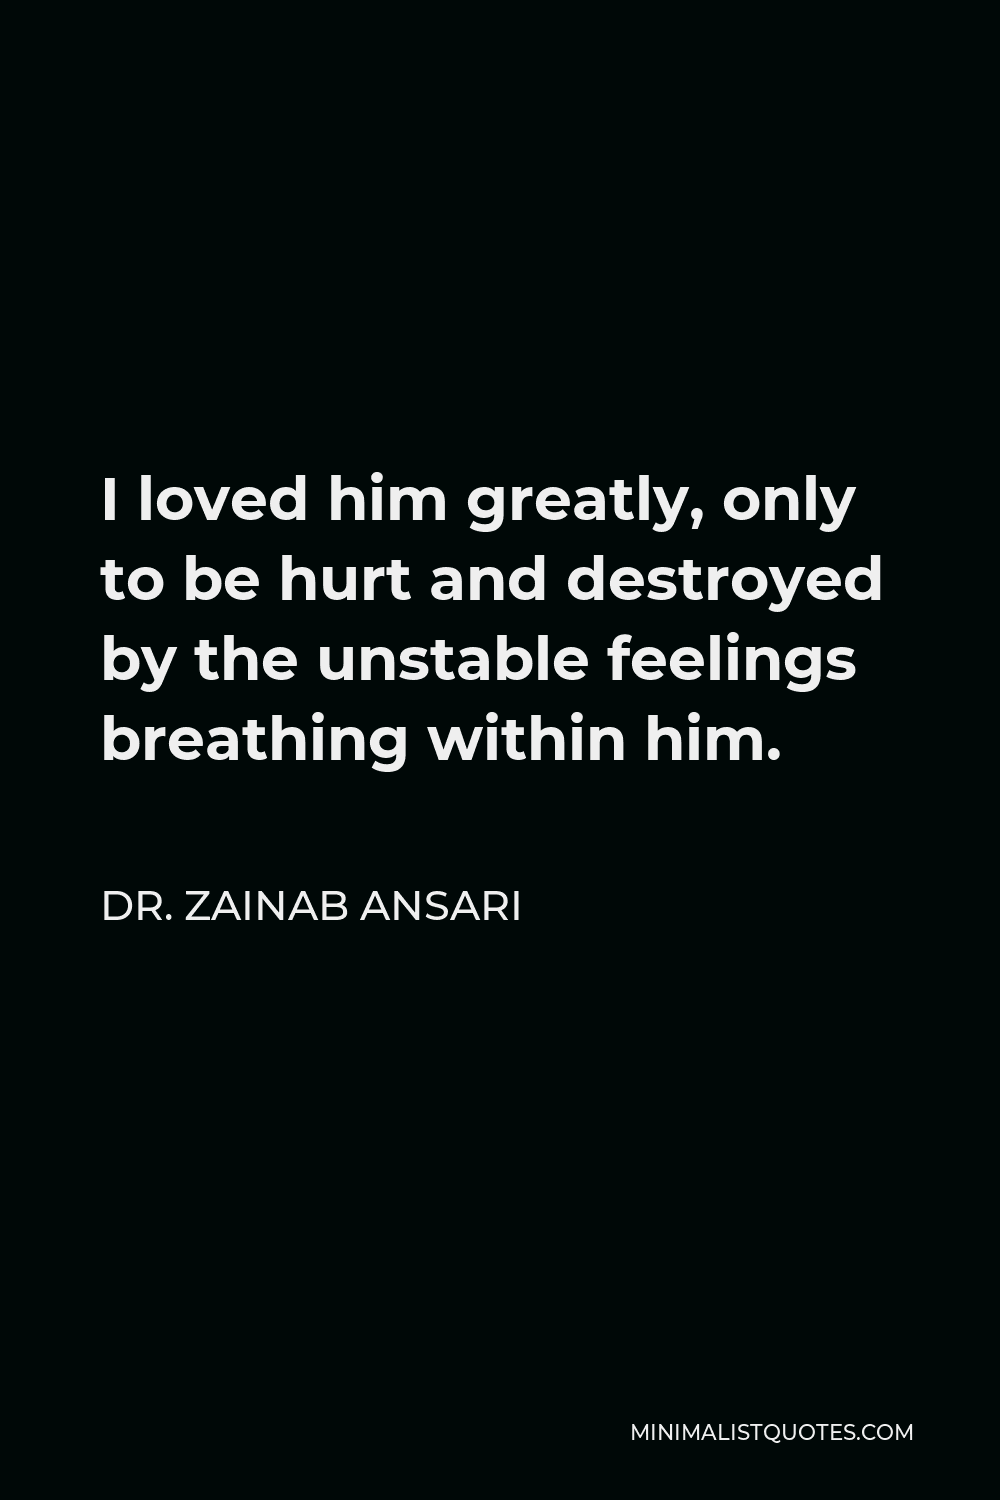 Dr. Zainab Ansari Quote - I loved him greatly, only to be hurt and destroyed by the unstable feelings breathing within him.